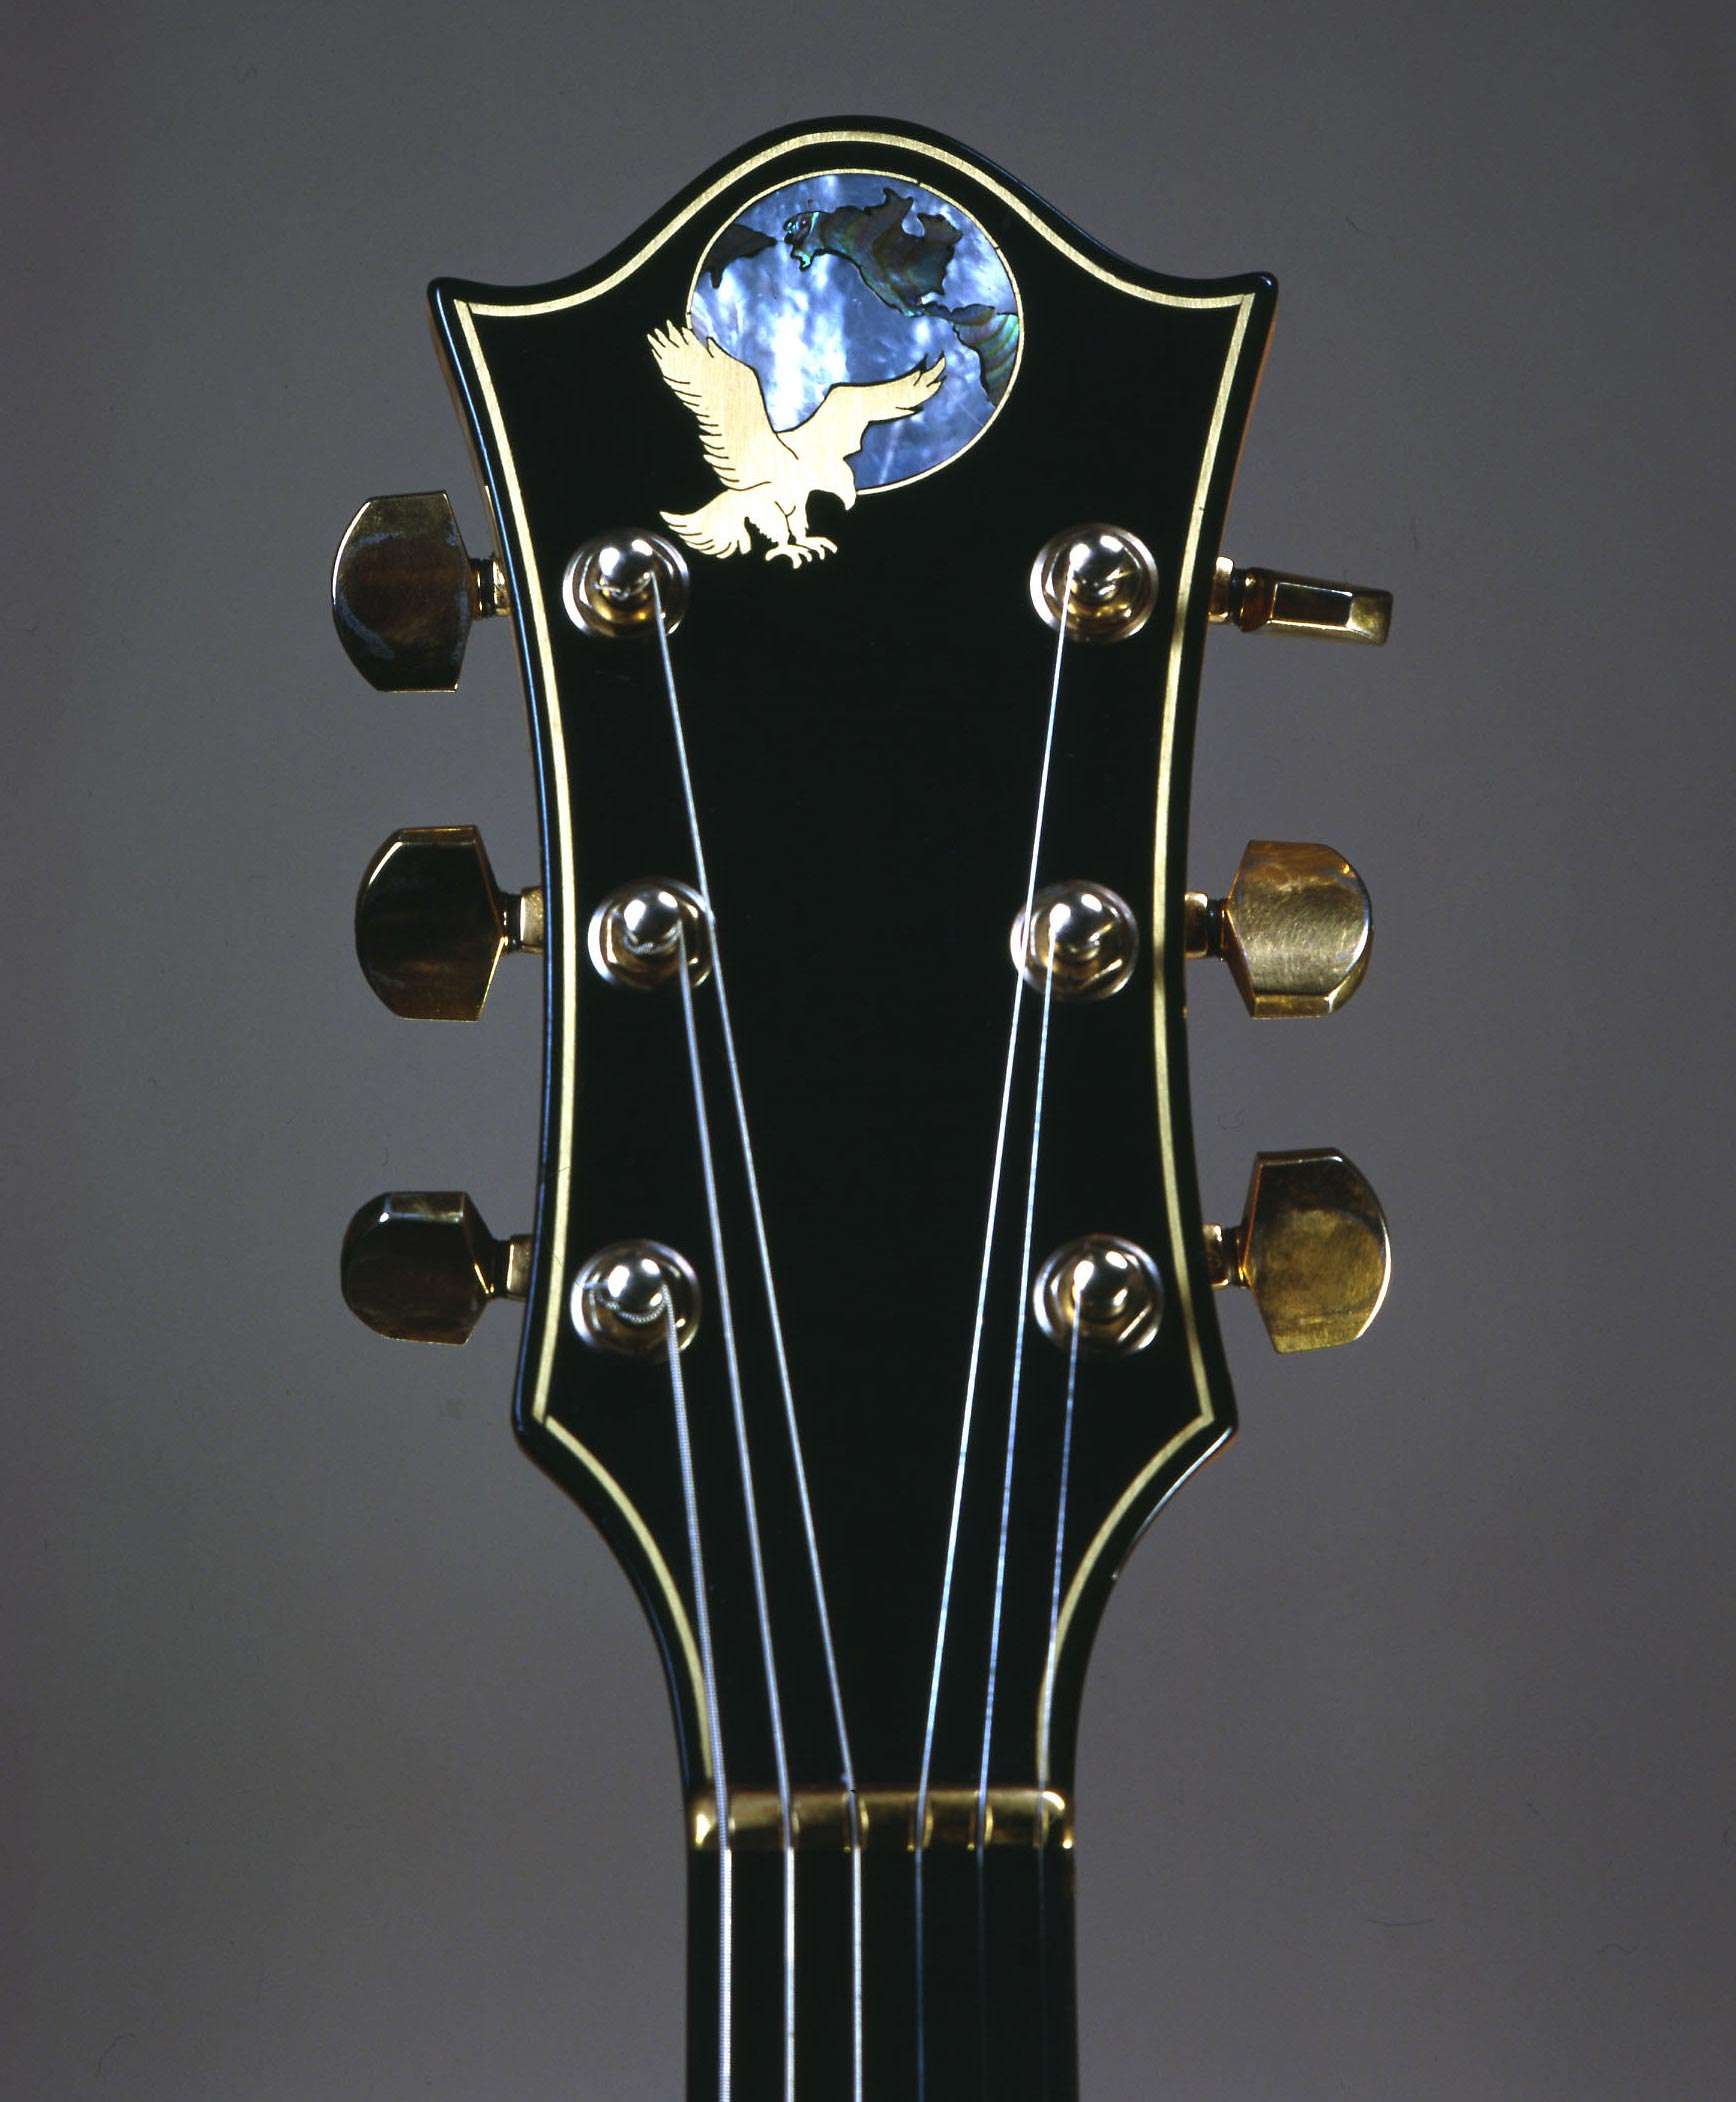 Following Diagram Illustrates The Various Parts Of The Bass Guitar